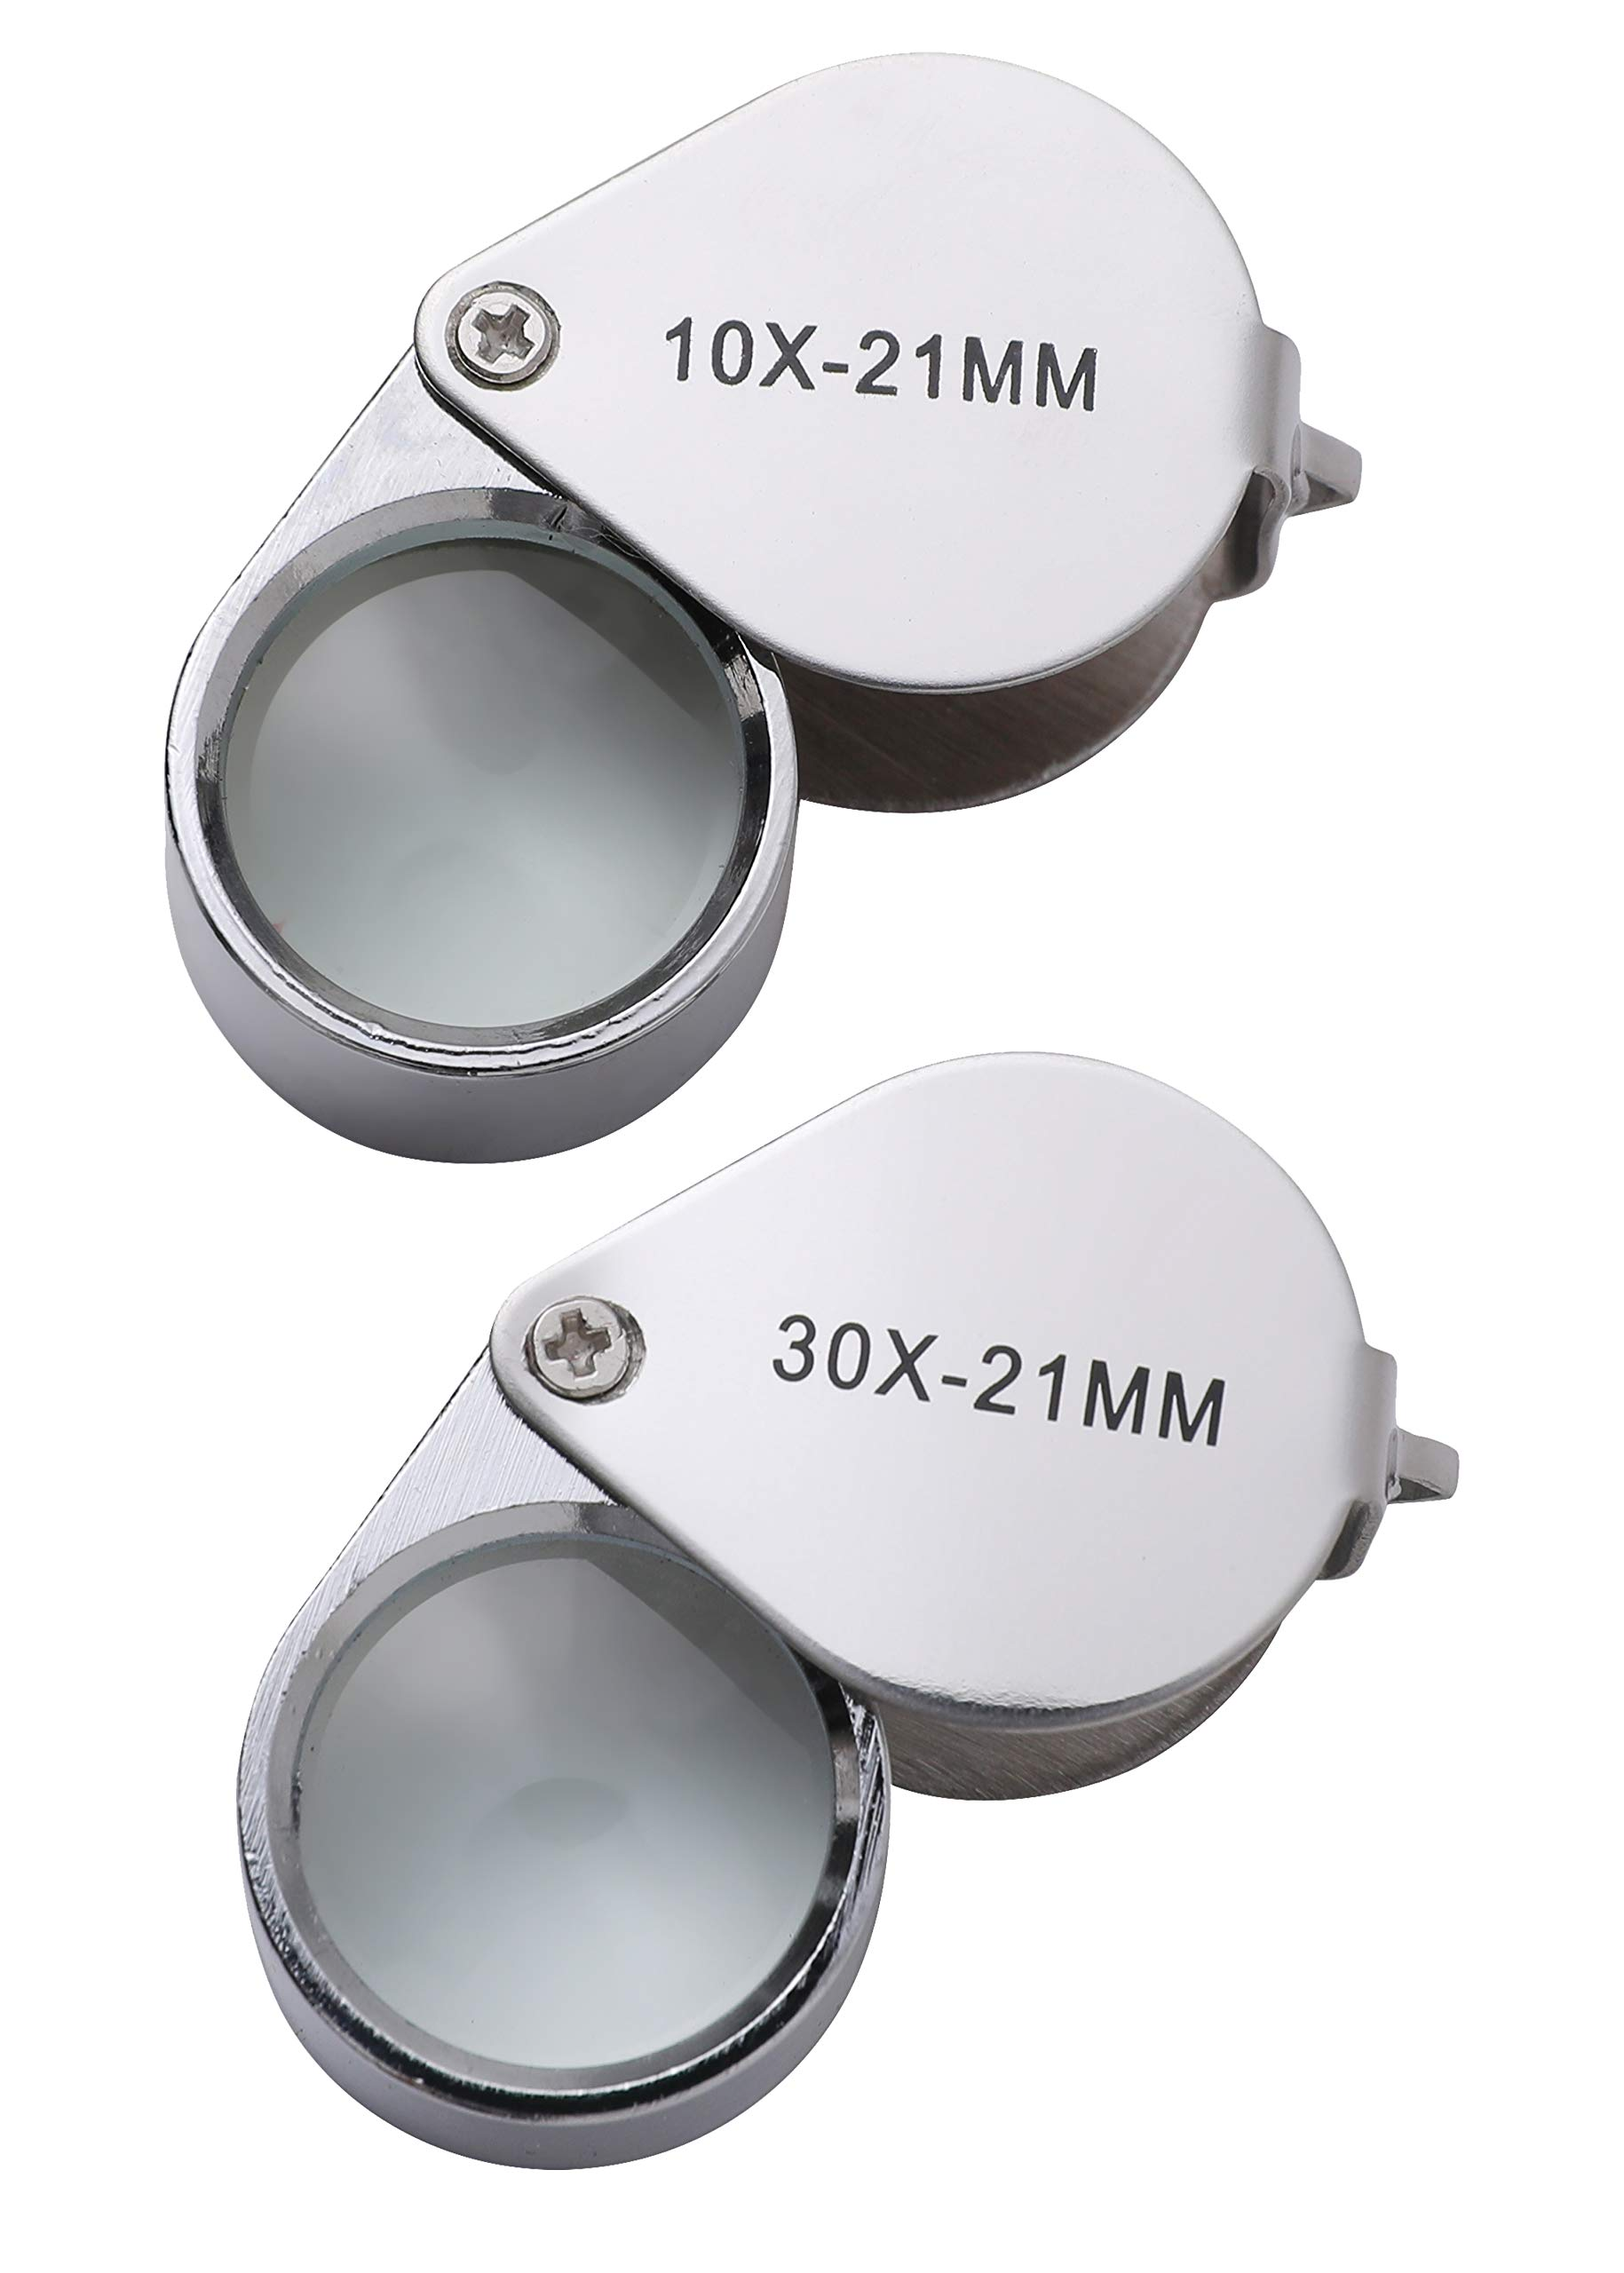 2pc Jewelers Eye Loupe Set 10X and 30X Magnifying Glass by Noa Store